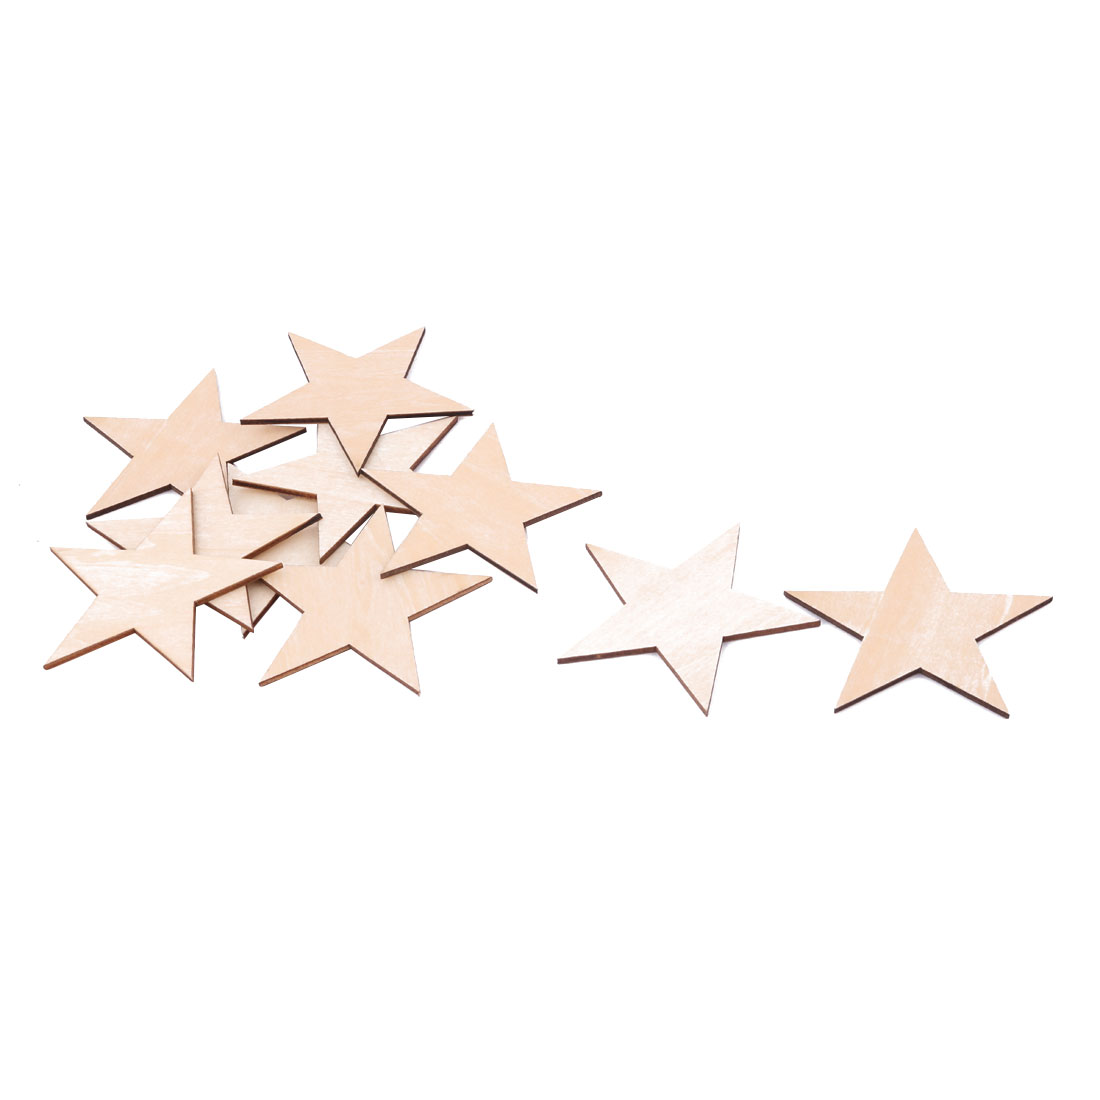 Wooden Star Shaped DIY Craft Christmas Tree Accessories Ornaments Beige 80 x 80mm 15pcs